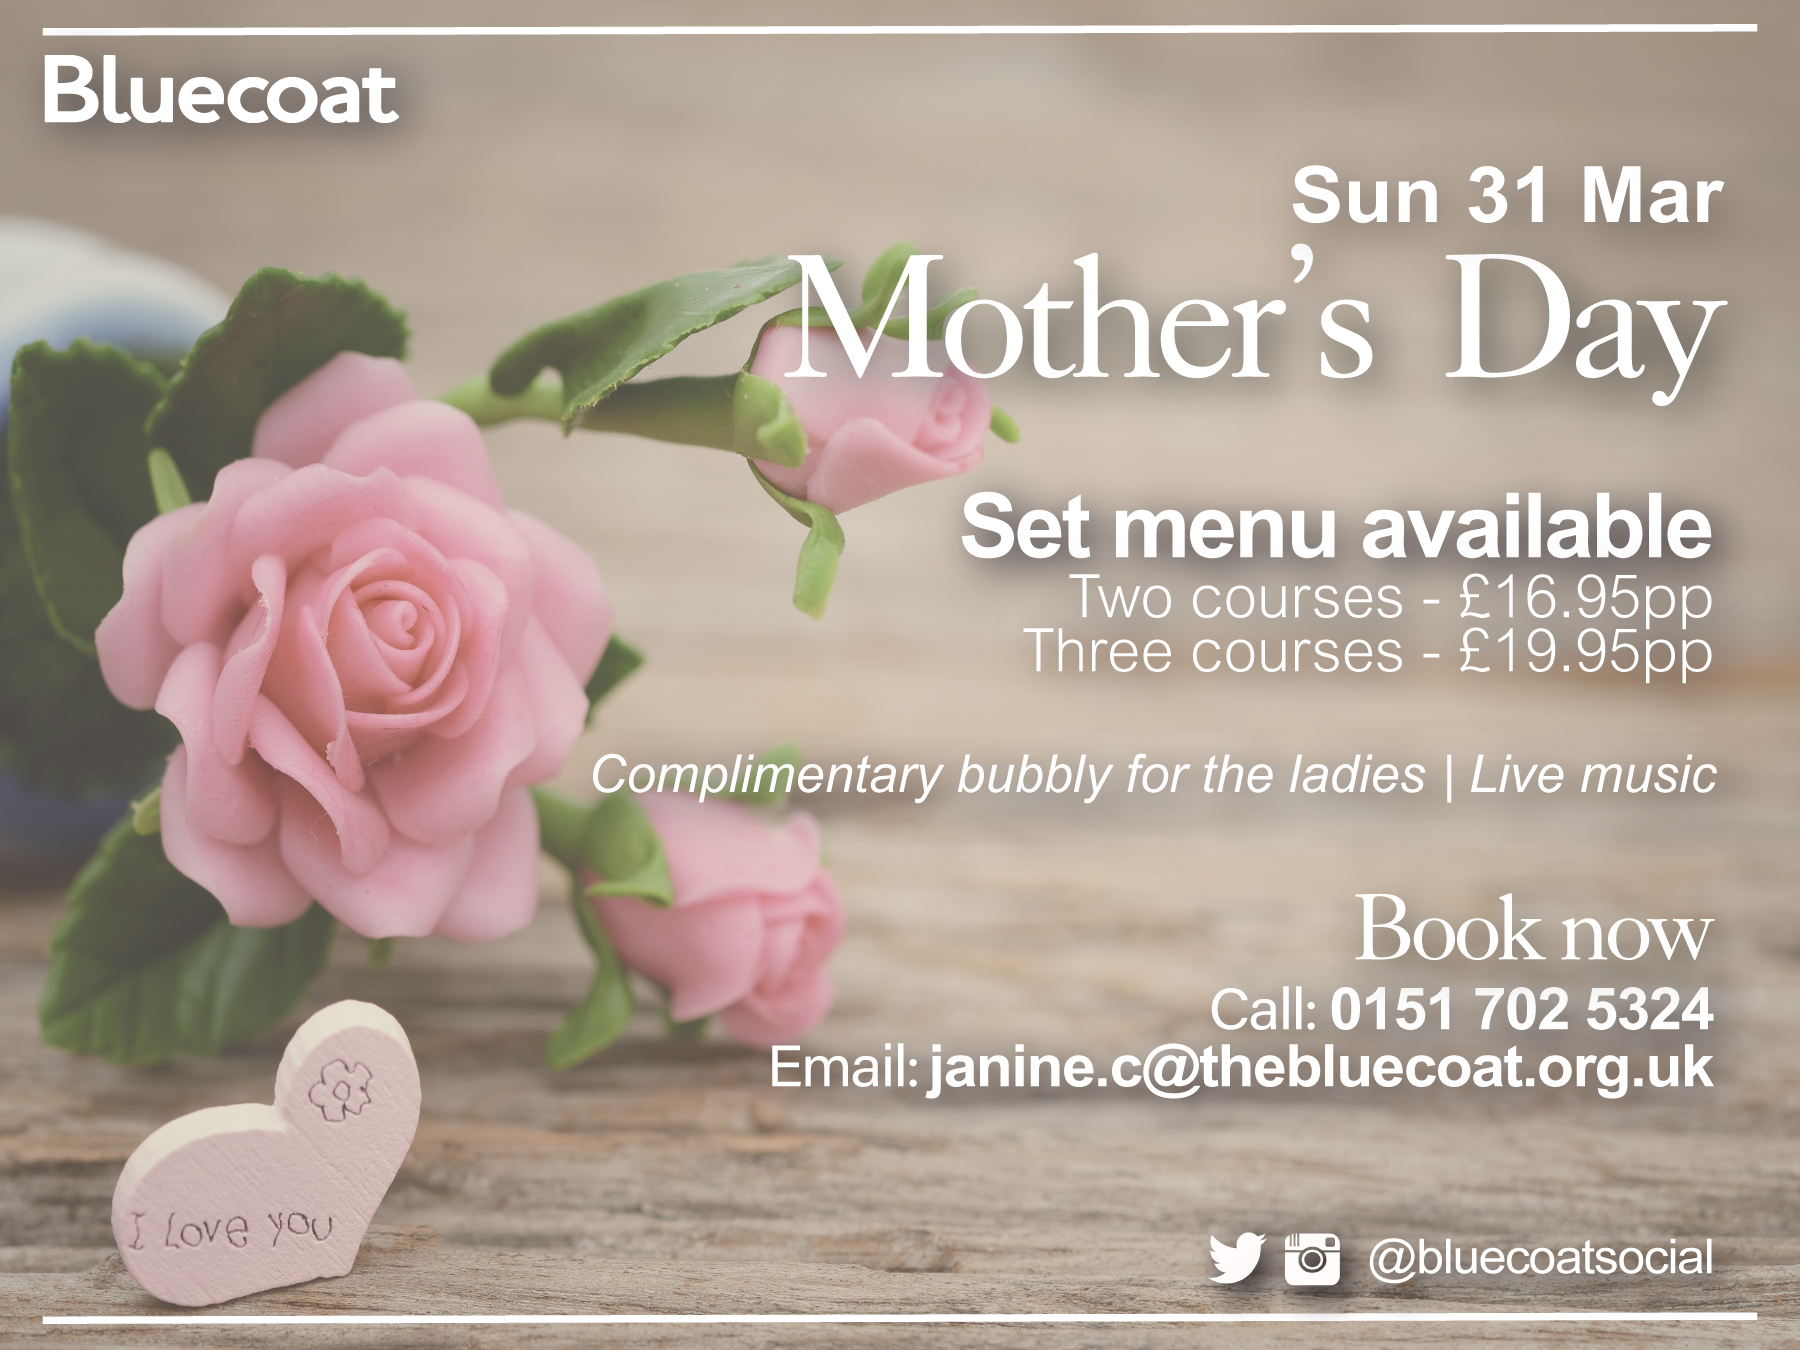 Spend Mother's Day at Bluecoat Liverpool